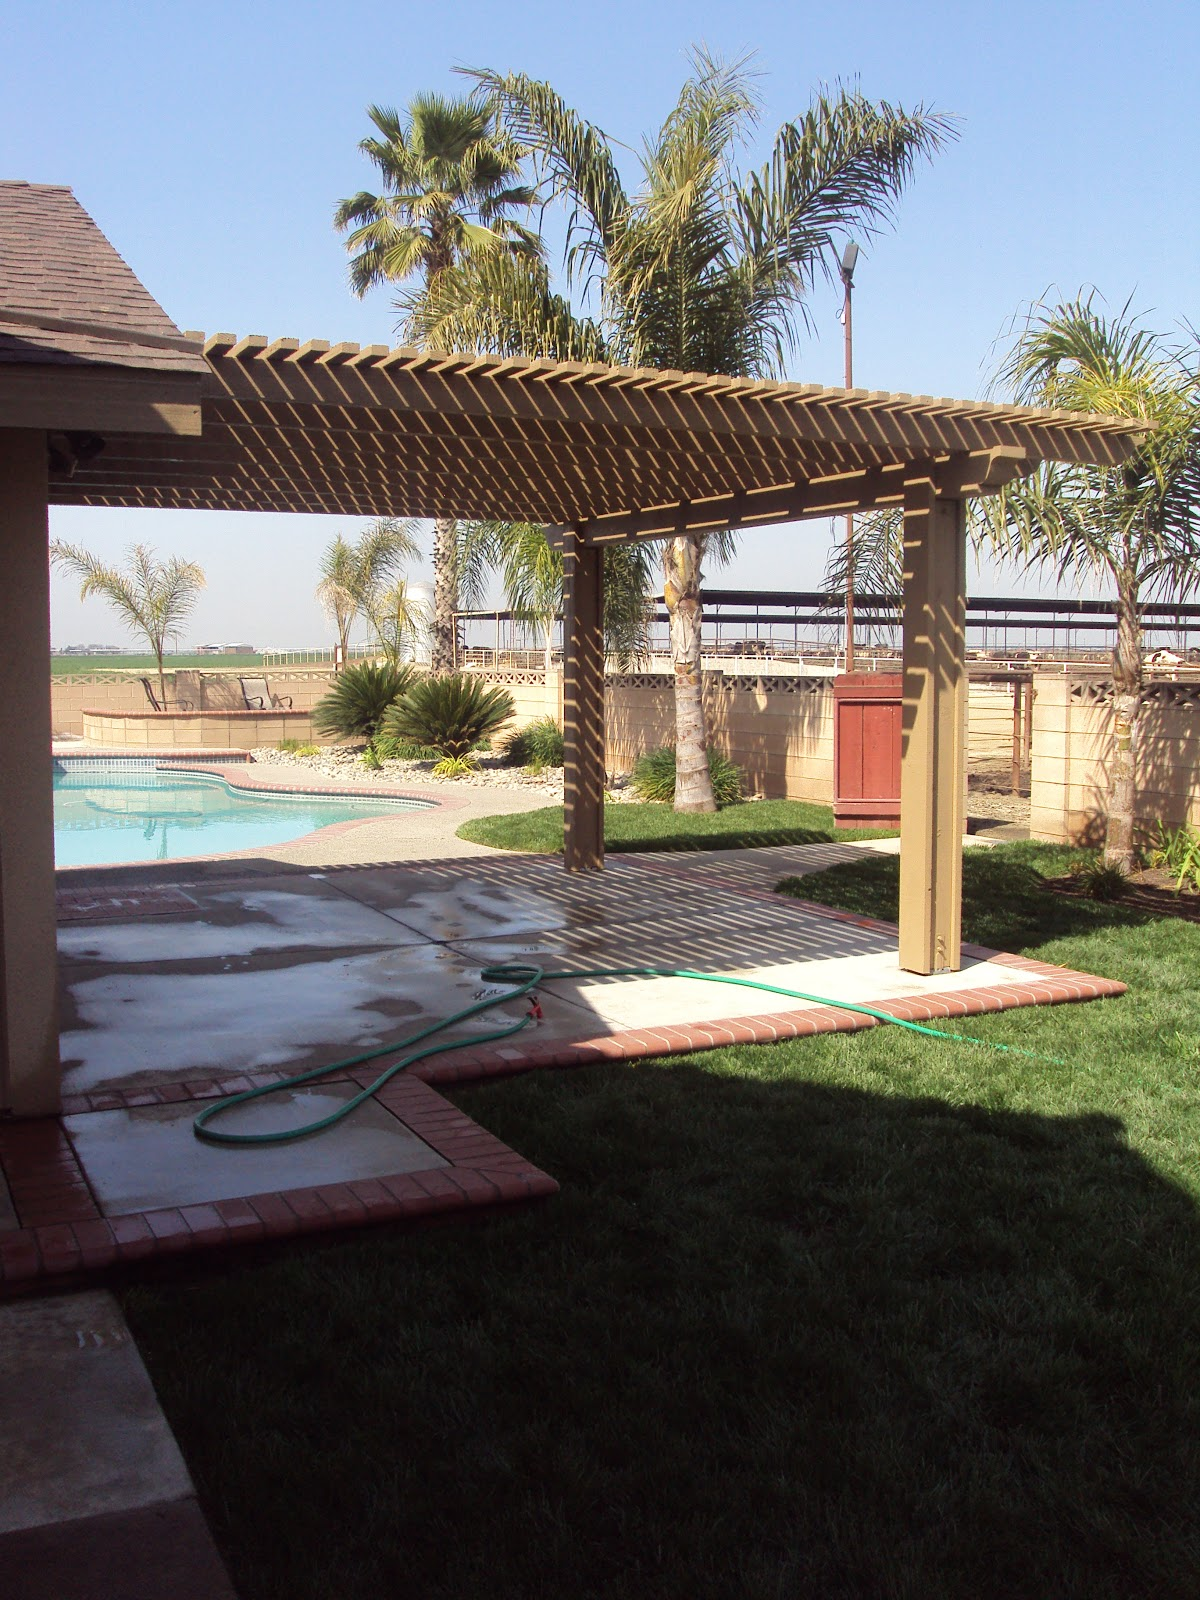 Patio Cover Load Calculator: Douma Concrete & Masonry: Outdoor Shower, Patio Cover